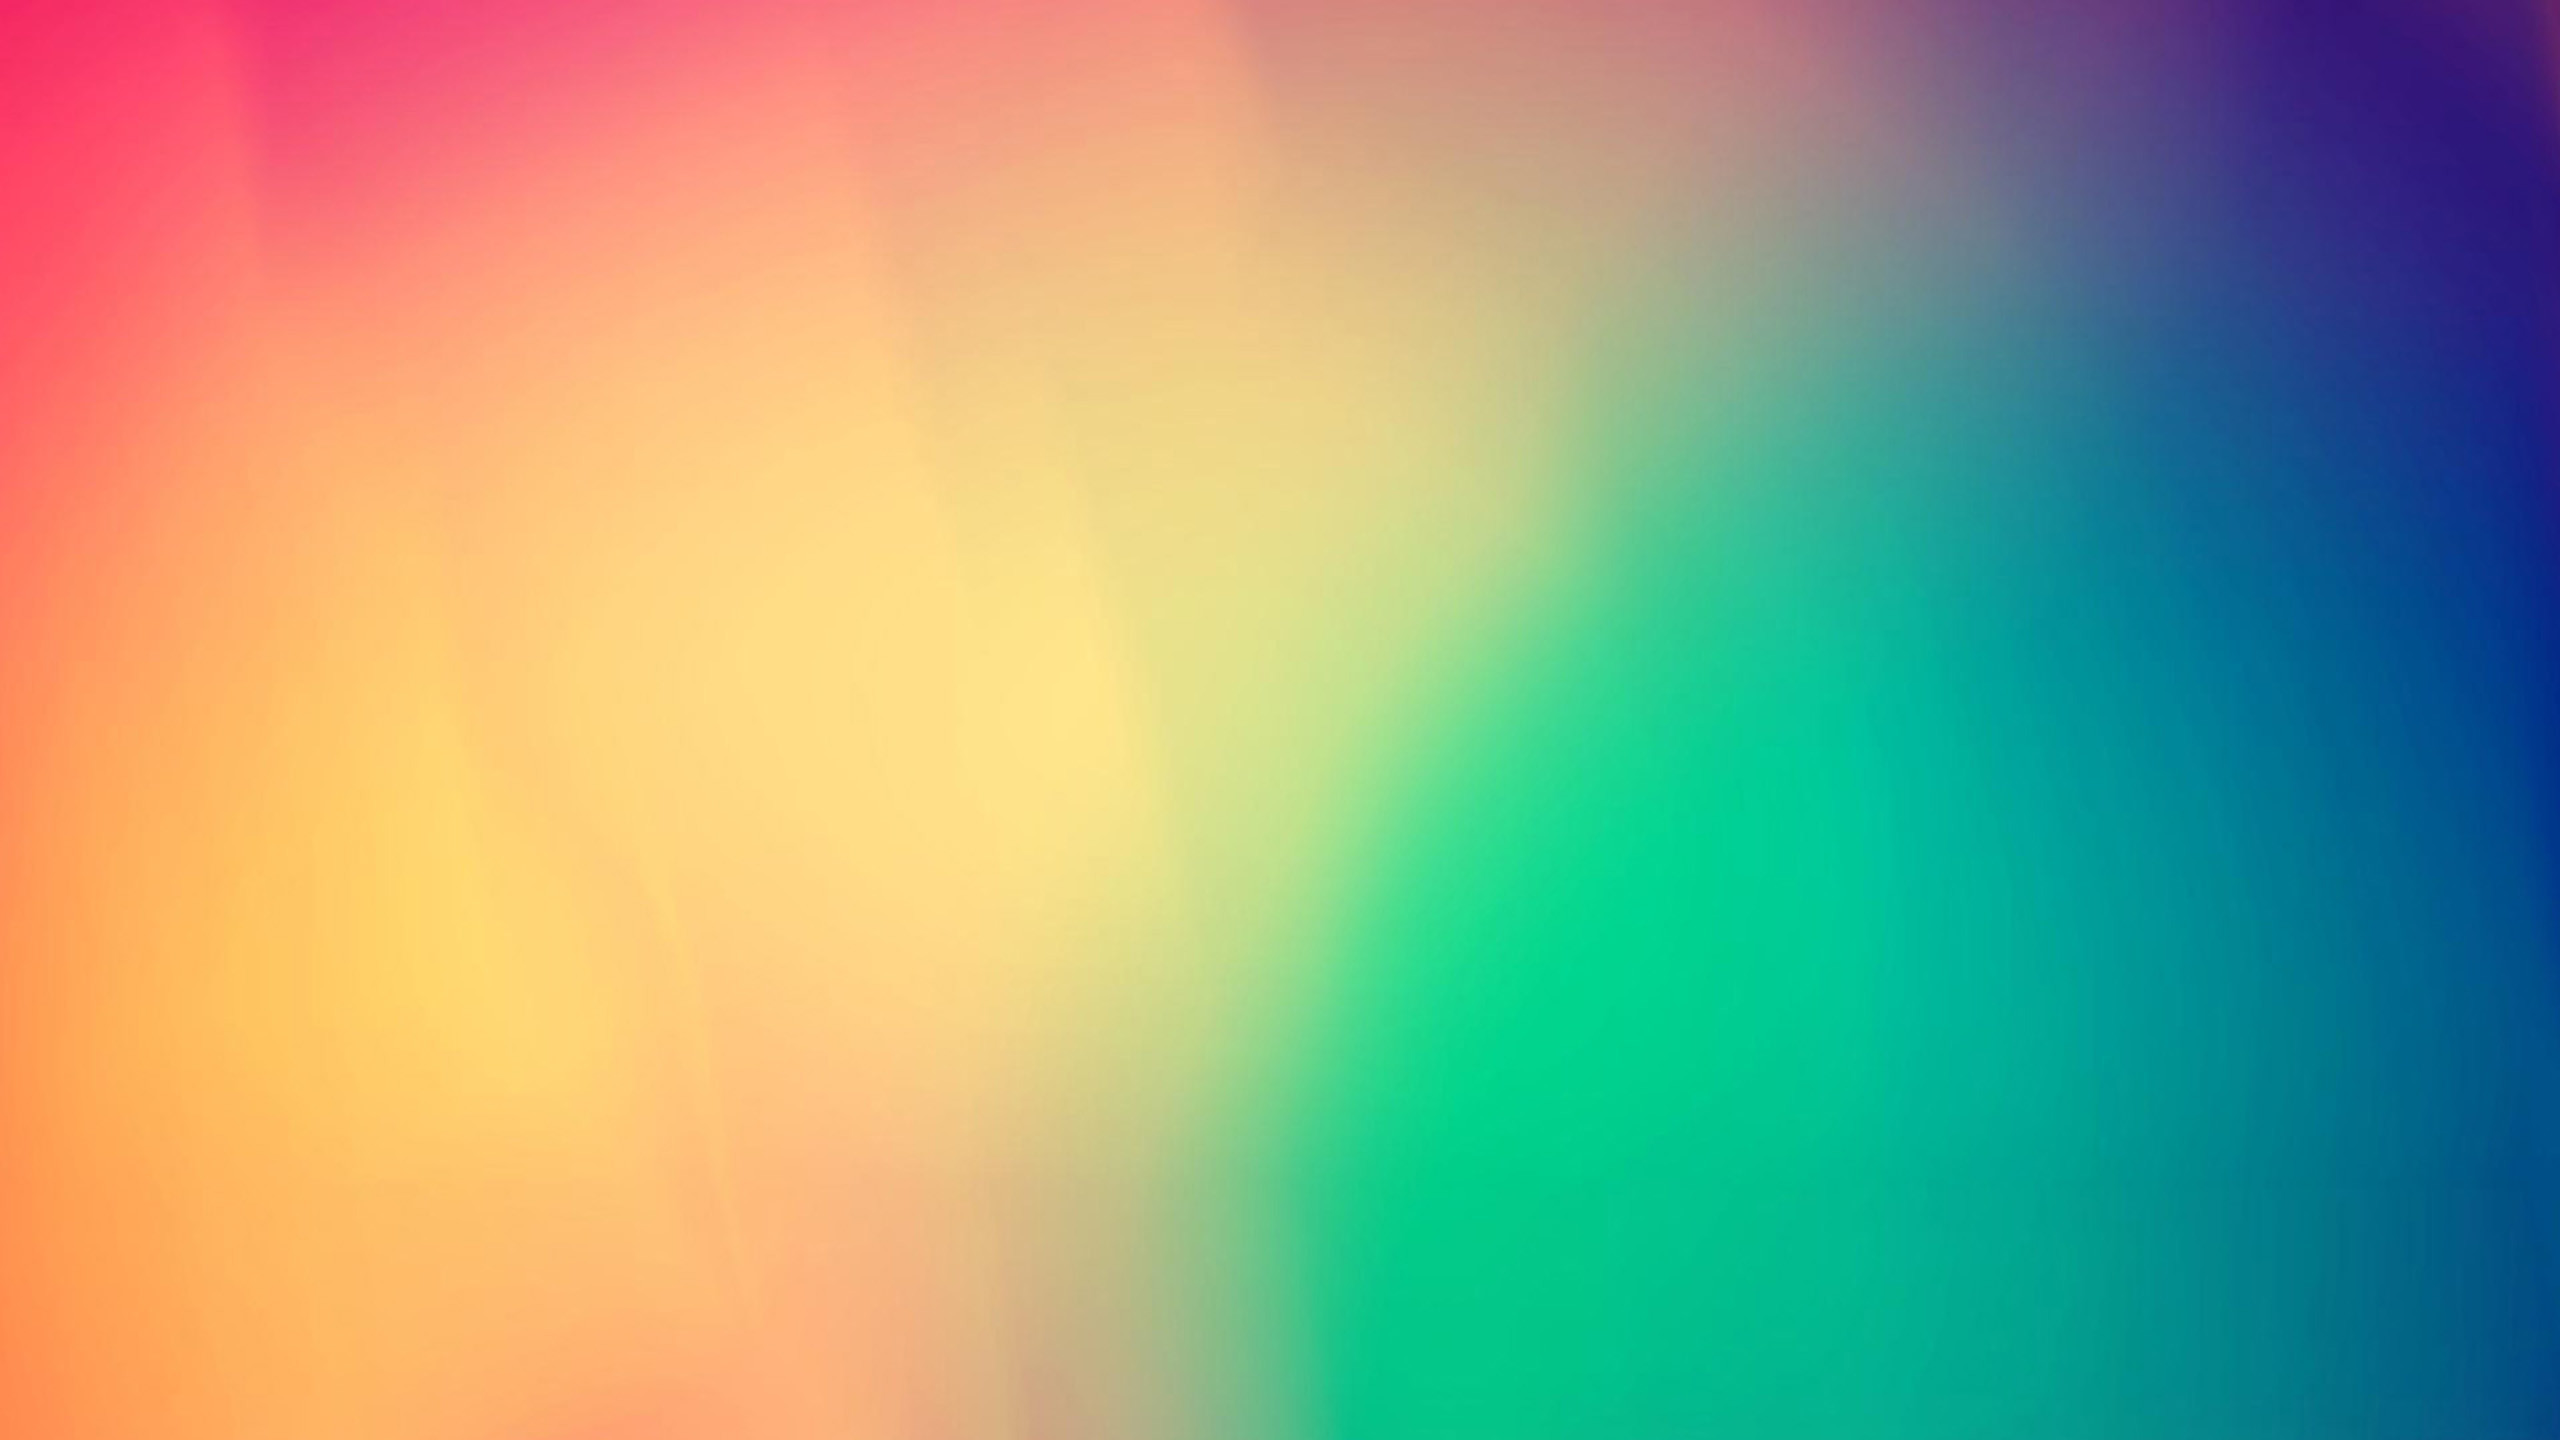 Download Solid Color Backgrounds.